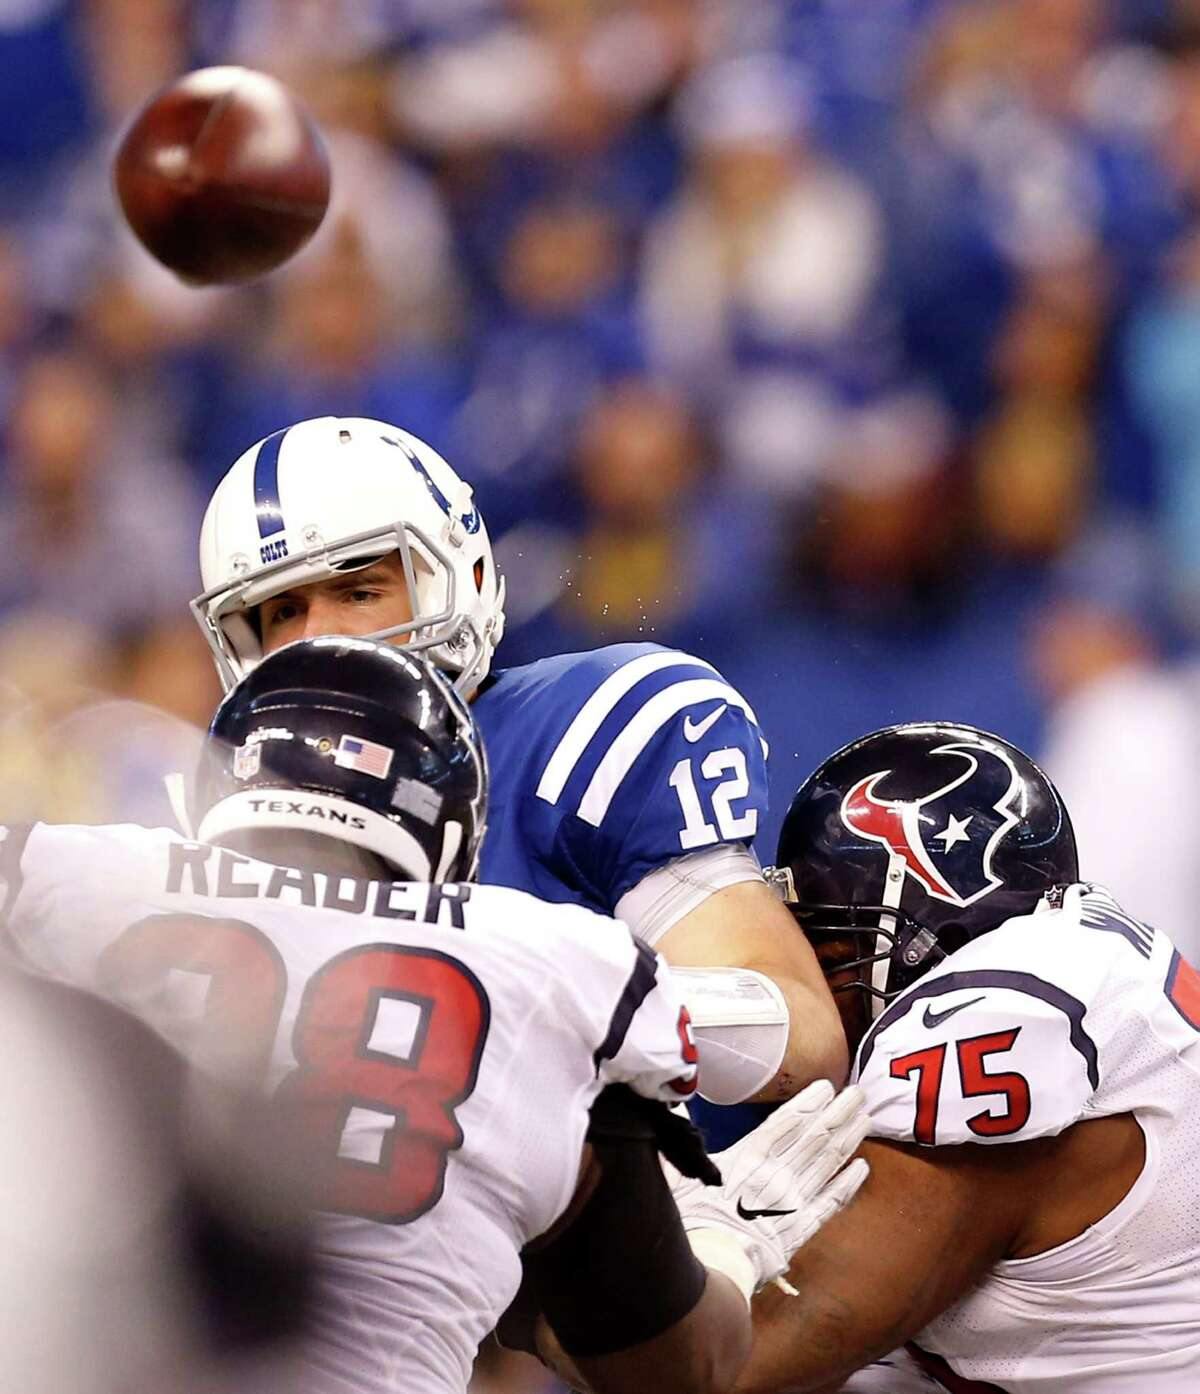 Indianapolis Colts quarterback Andrew Luck (12) throws an errant pass as he is hit by Houston Texans defensive end D.J. Reader (98) and nose tackle Vince Wilfork (75) during the fourth quarter of an NFL football game at Lucas Oil Stadium on Sunday, Dec. 11, 2016, in Indianapolis.